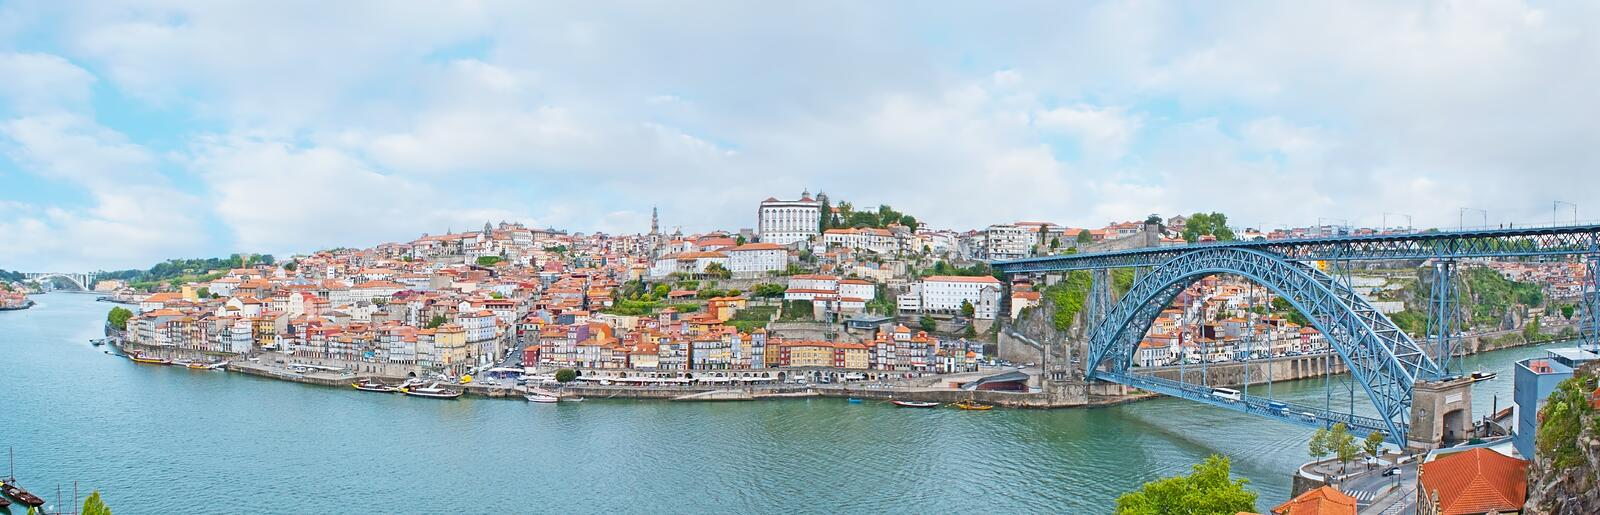 Panorama of old Porto. The cable car in Vila Nova de Gaia overlooks the old town of Porto at the bank od Douro river and the scenic Luis I bridge, Portugal royalty free stock photo